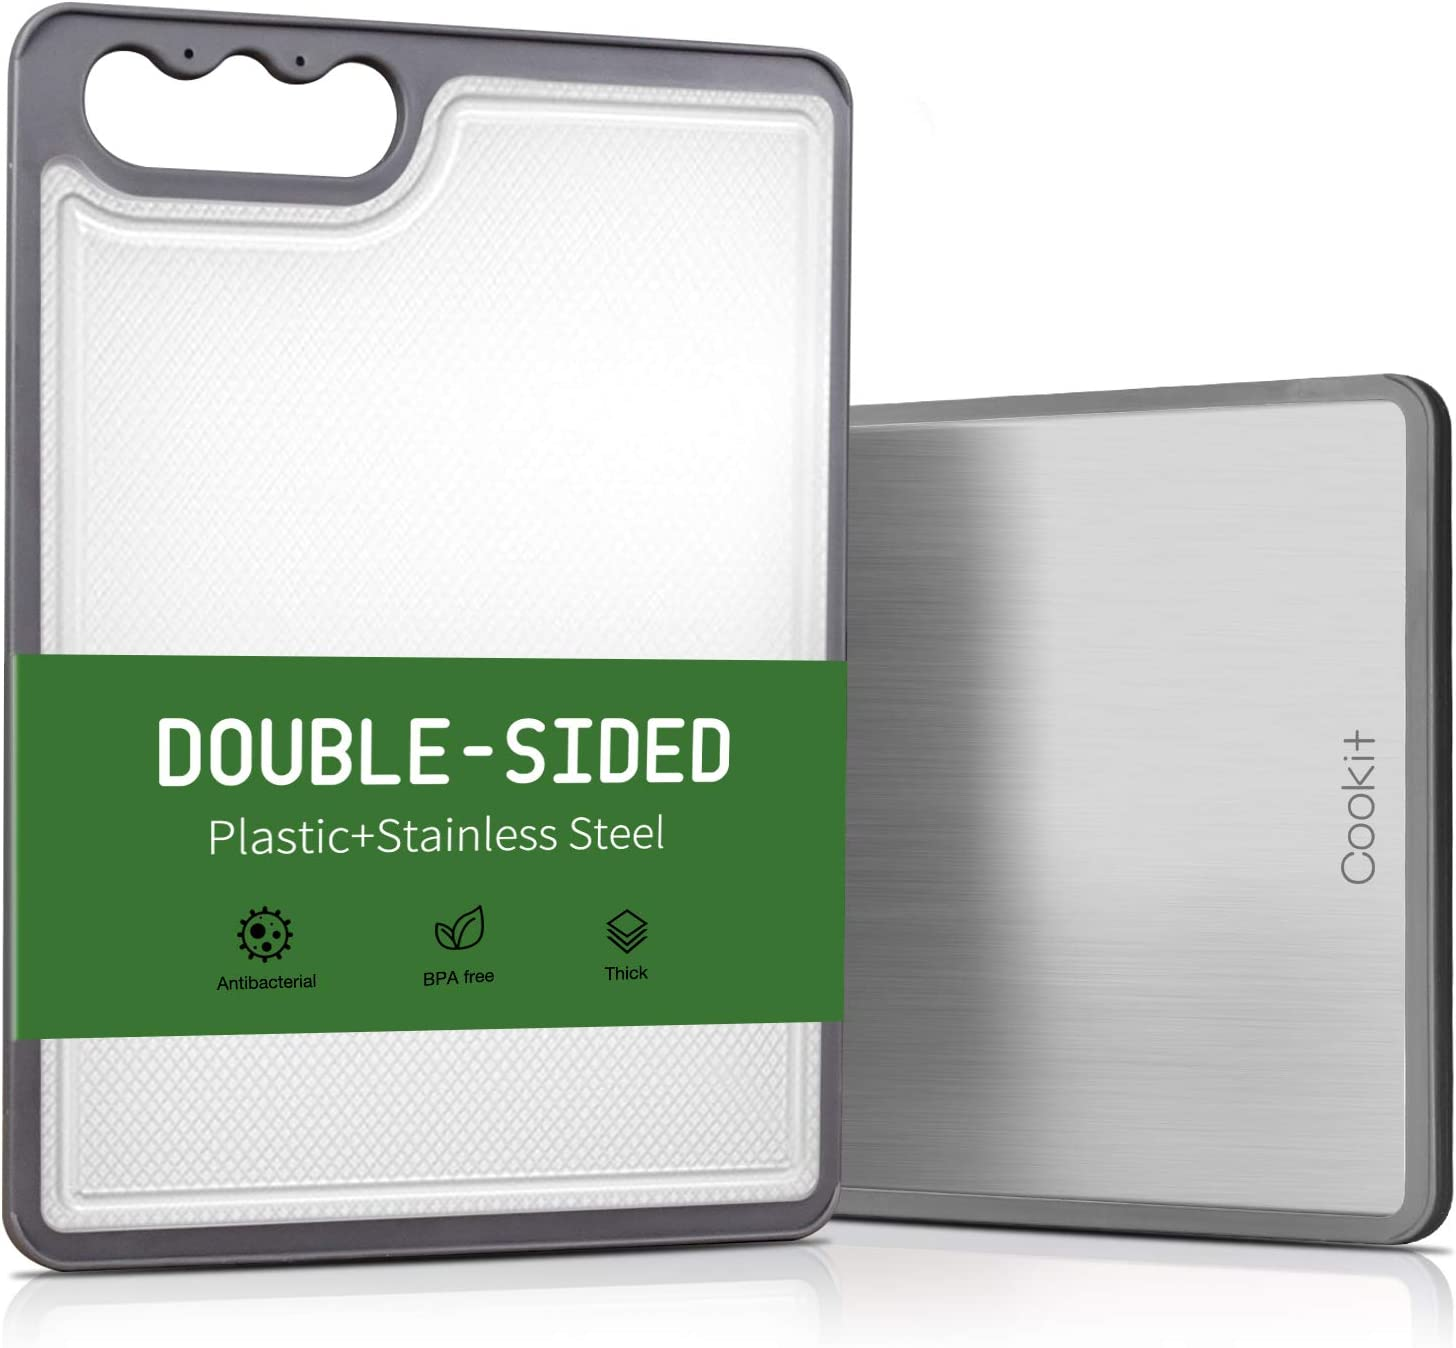 Cookit Plastic Cutting Board for Reversible Stainless St Kitchen Award-winning store New product